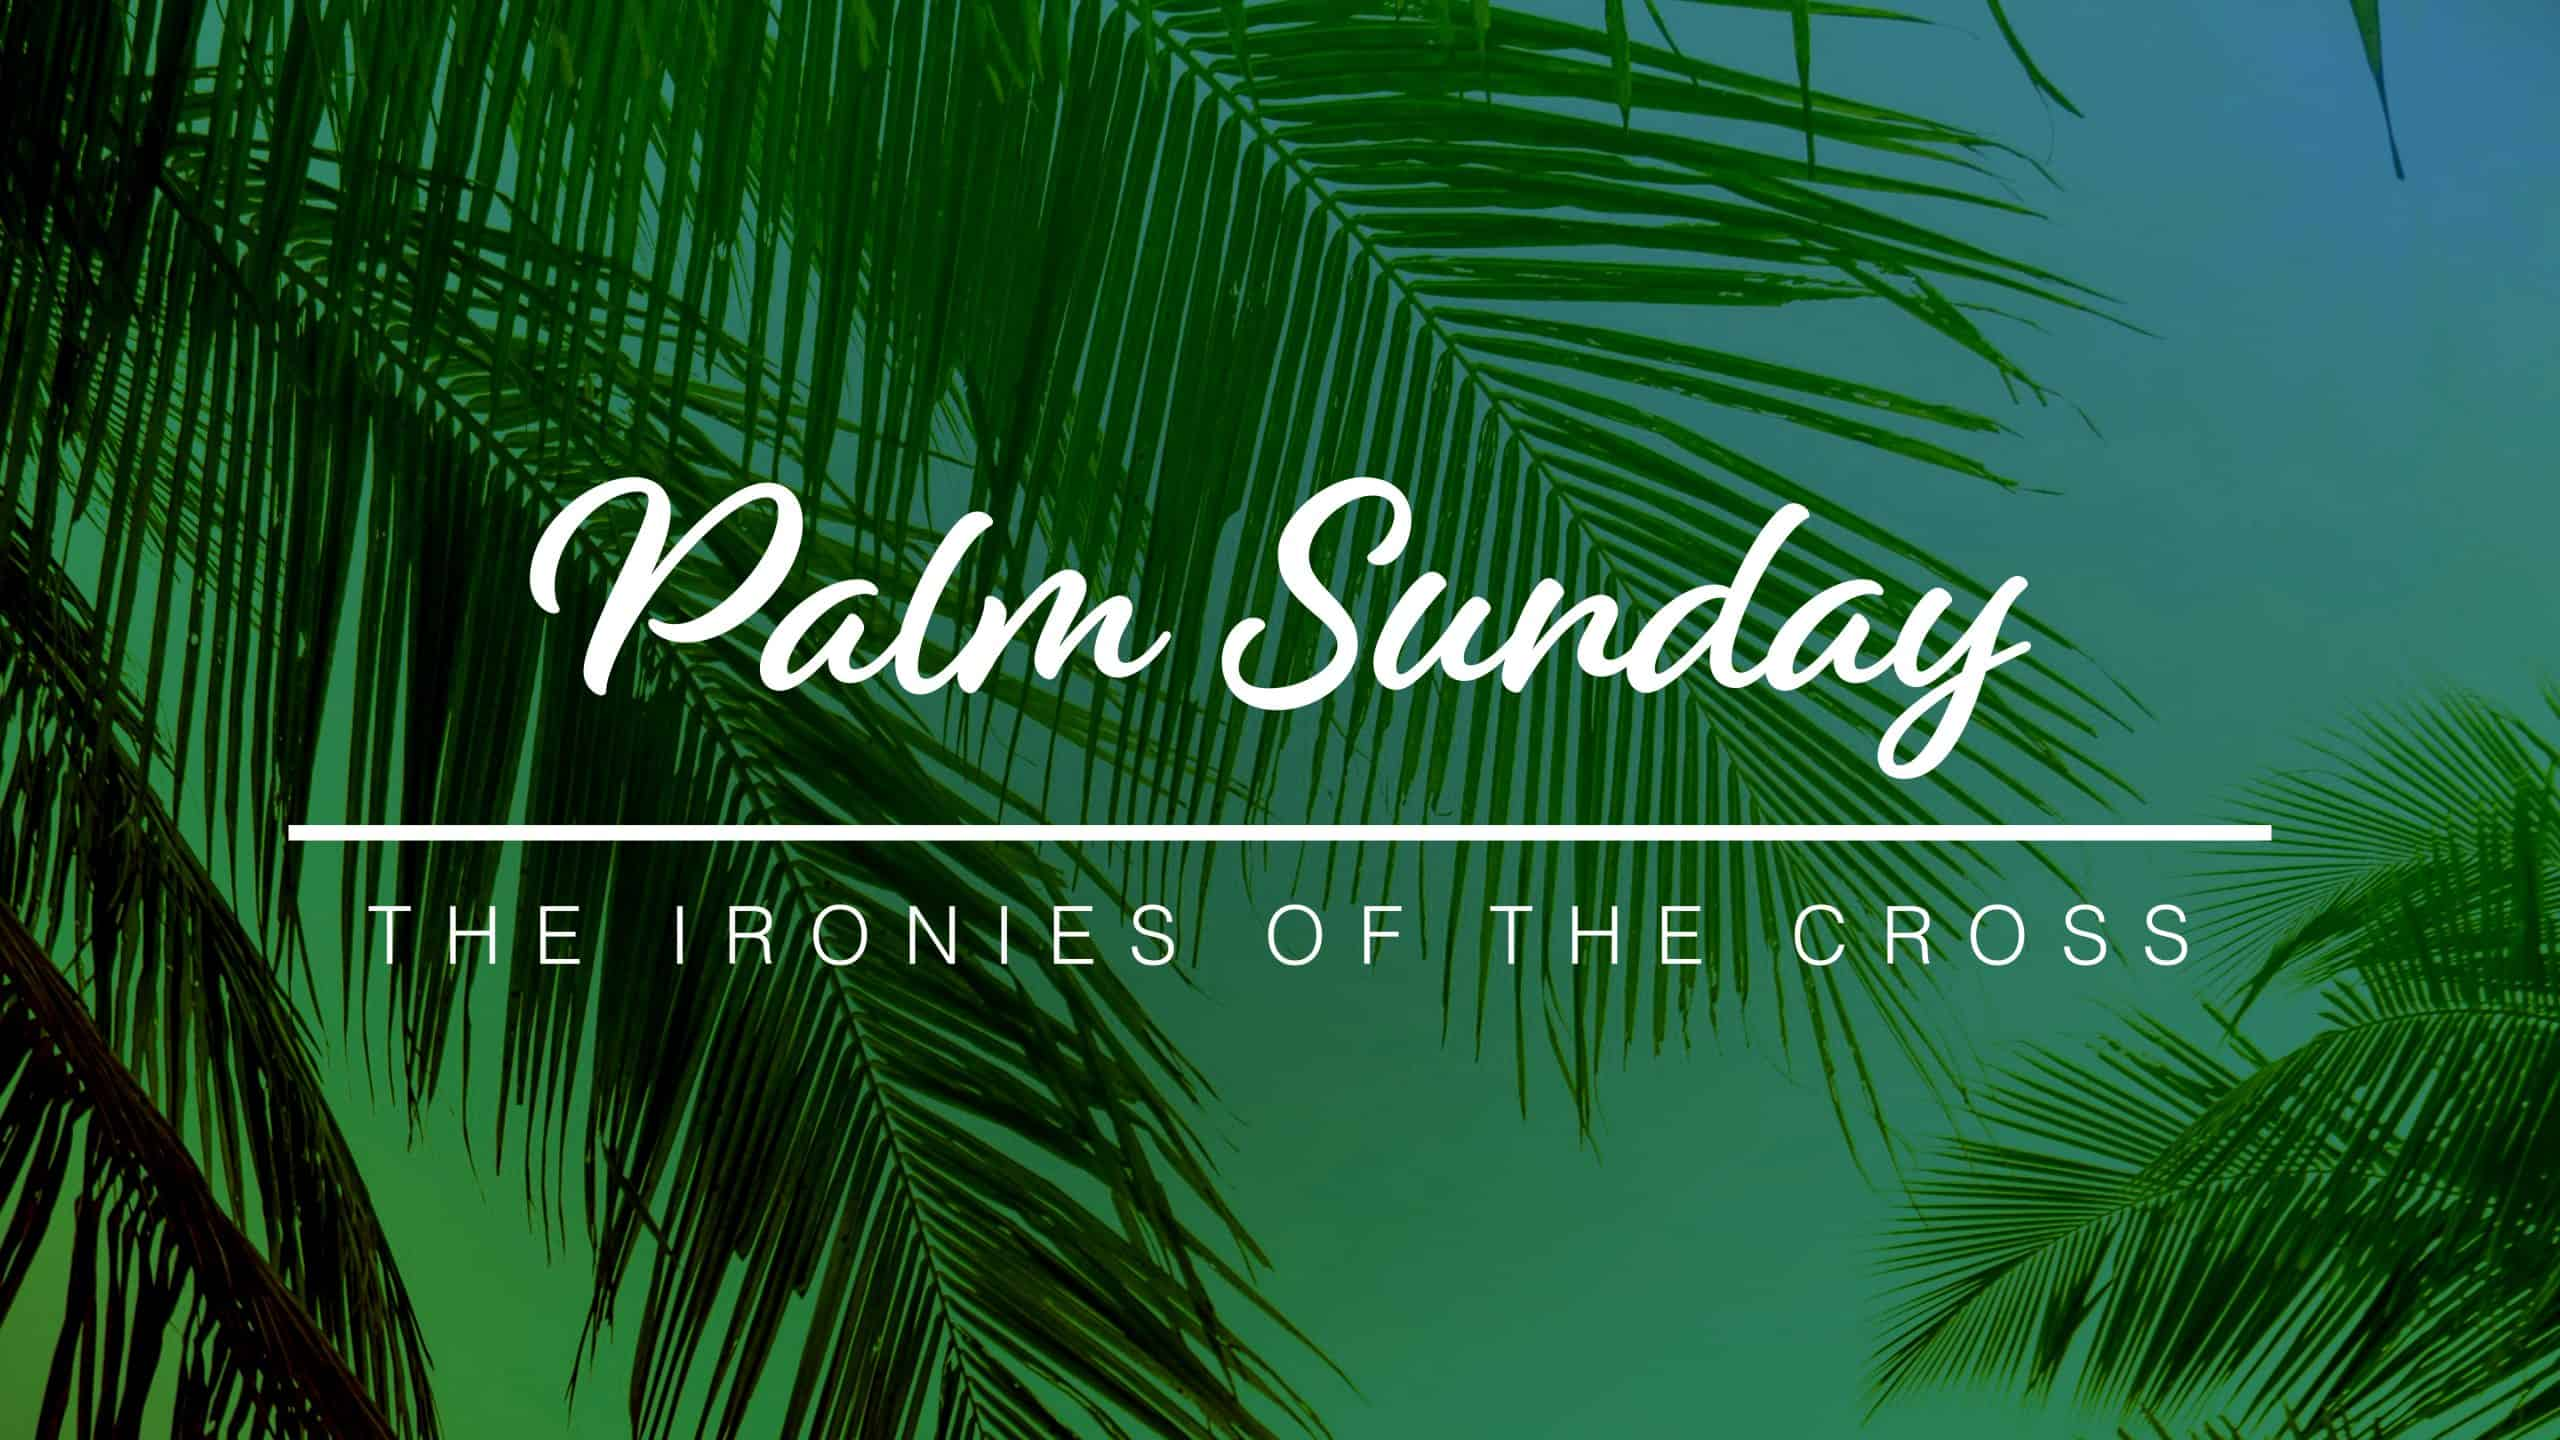 Palm Sunday 2020: The Ironies of the Cross - Part 1